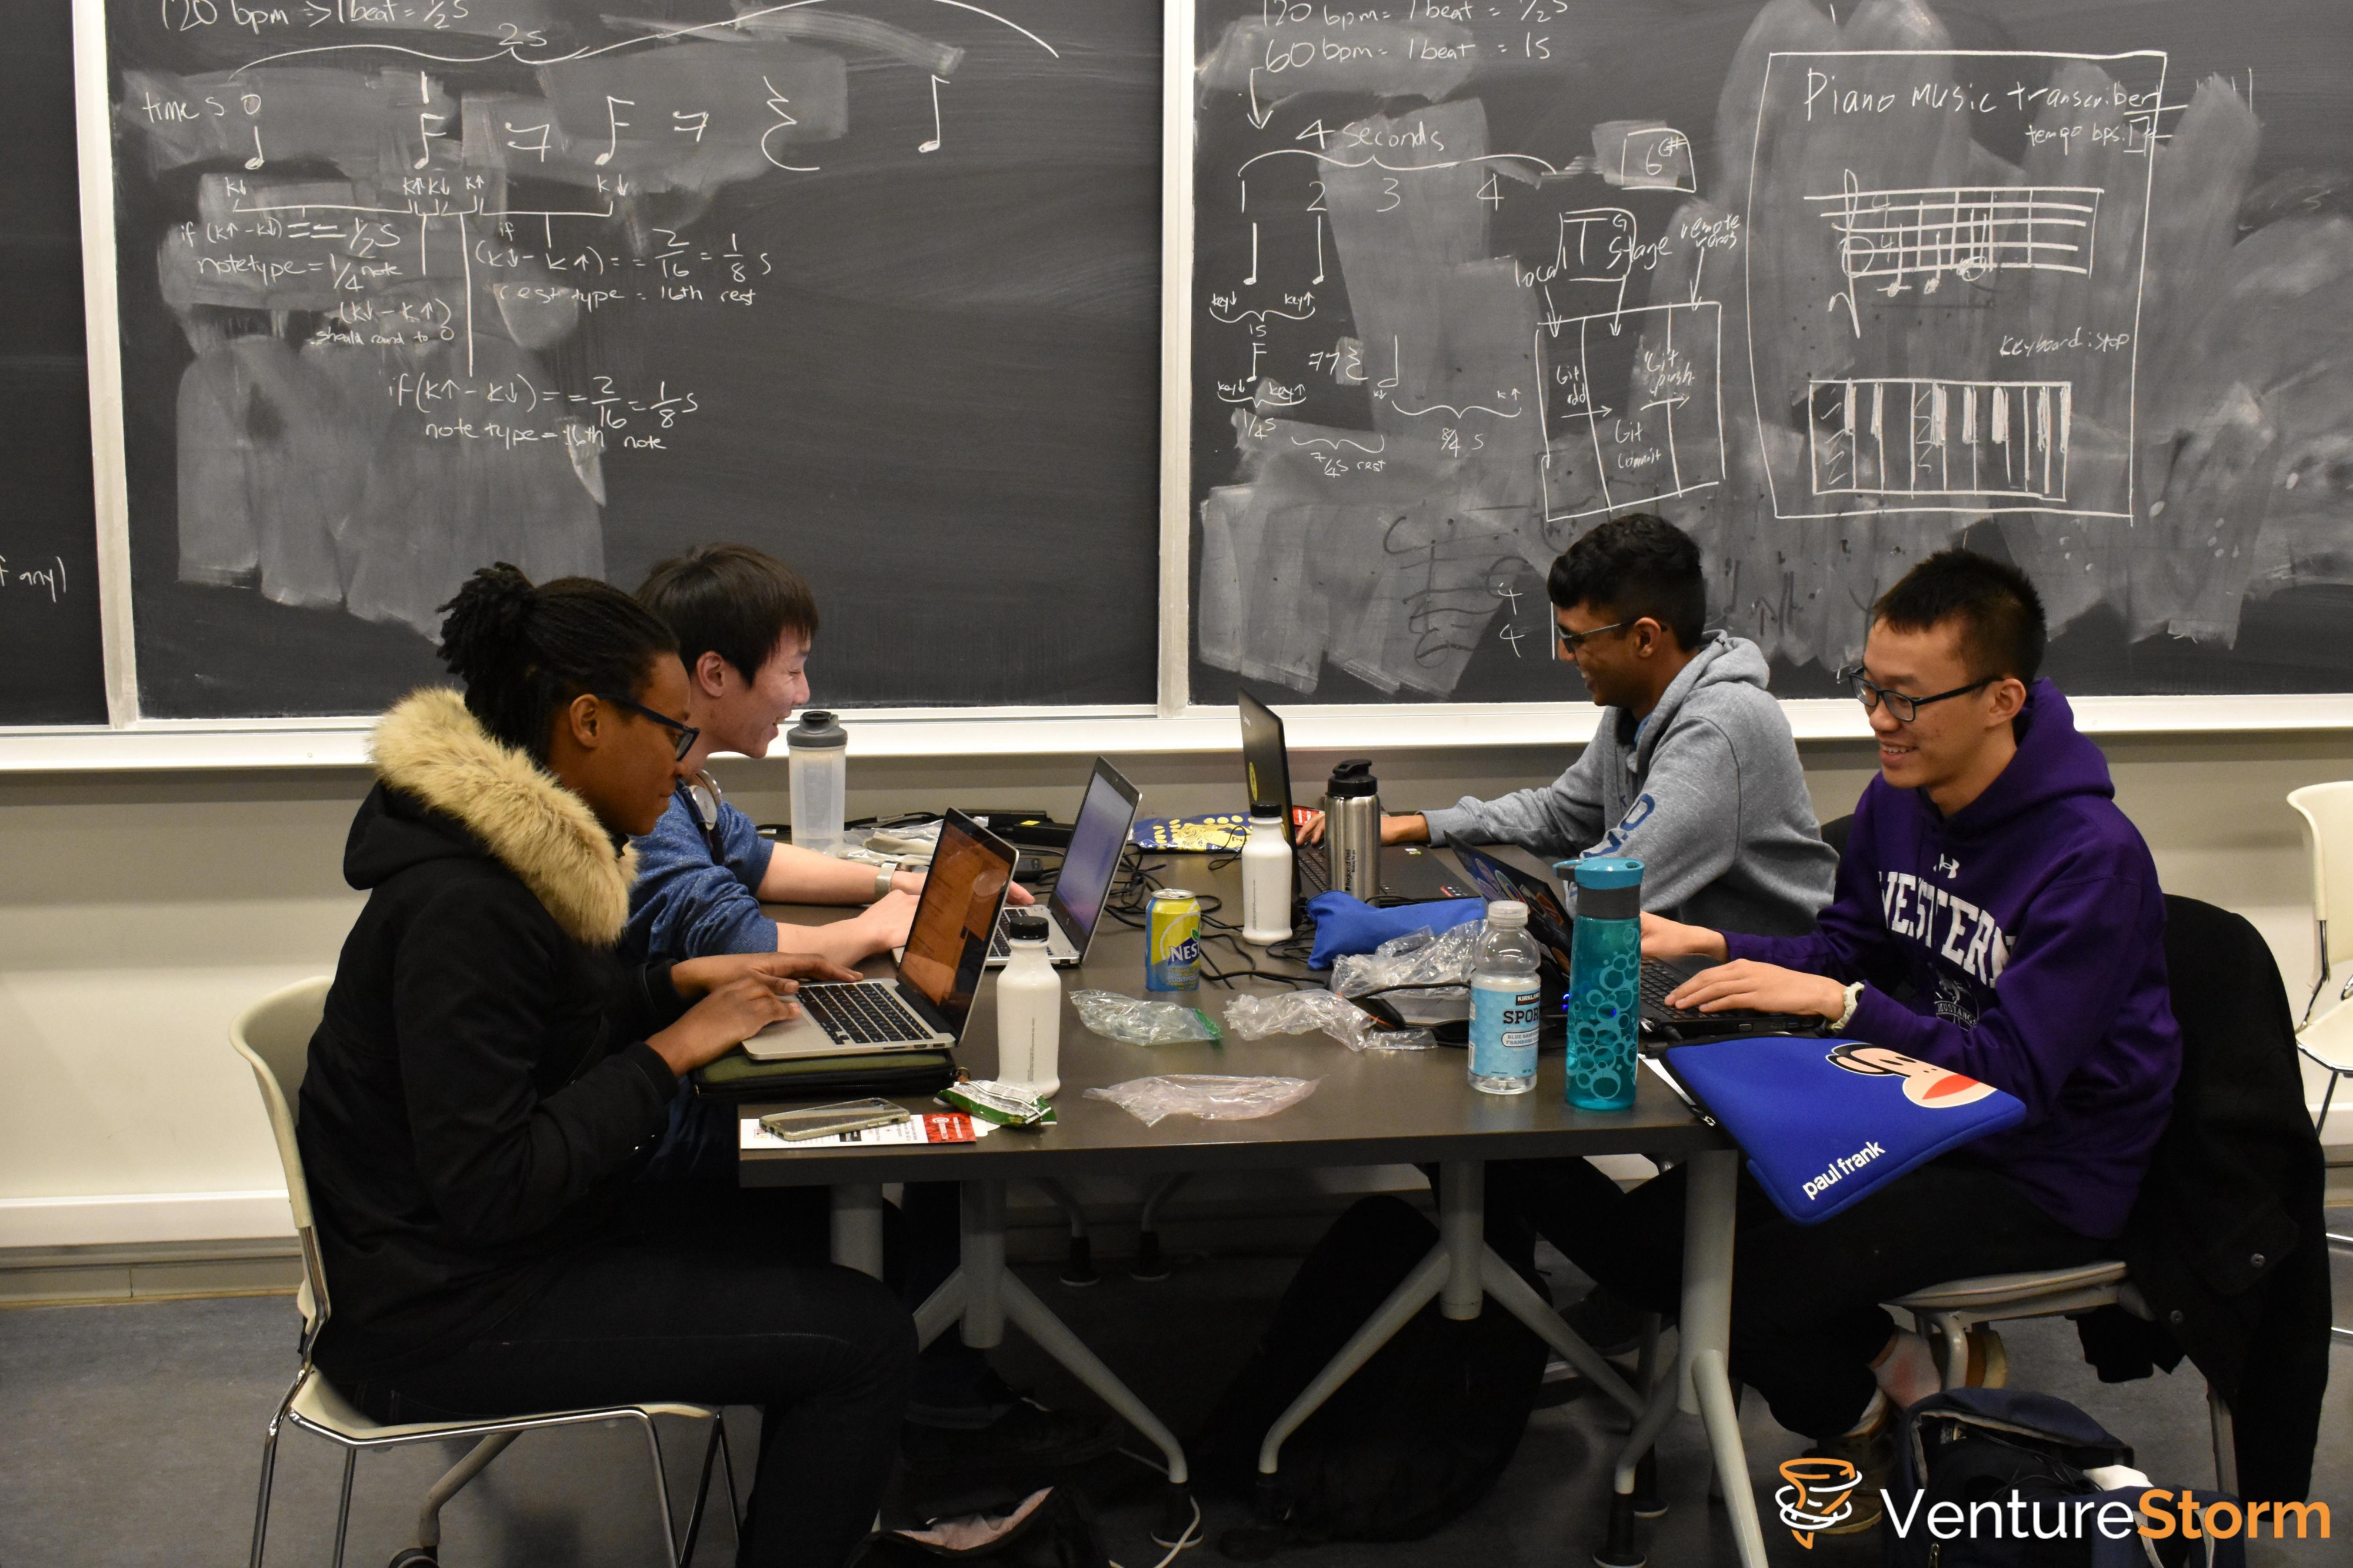 6 Awesome Hacks from Hack The Valley - VentureStorm Blog